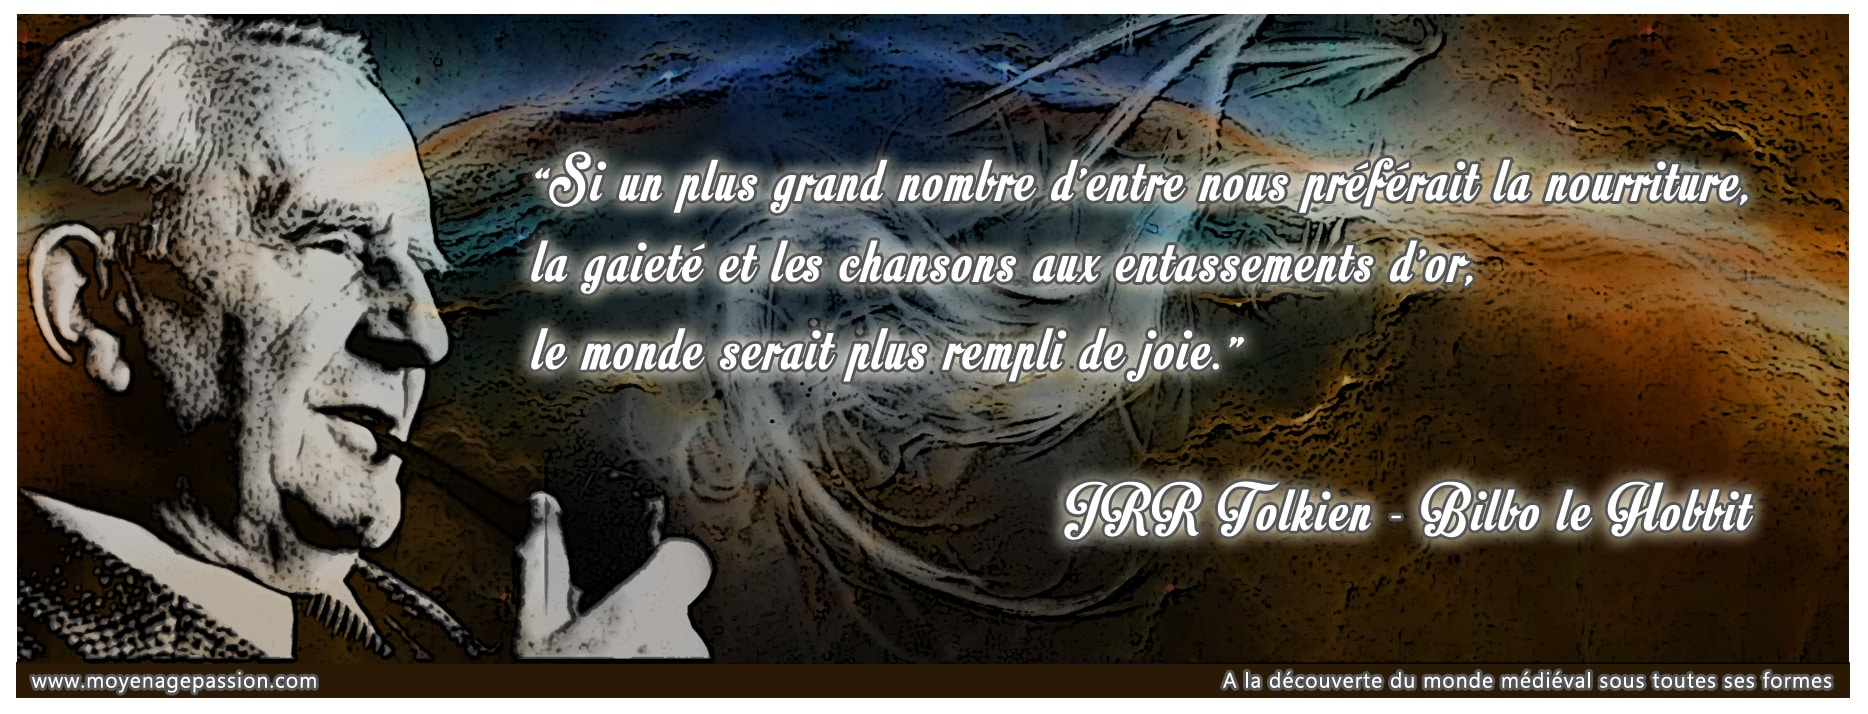 JRR_tolkien_bilbo_hobbit_citations_auteur_medieval_fantastique_passion_moyen-age